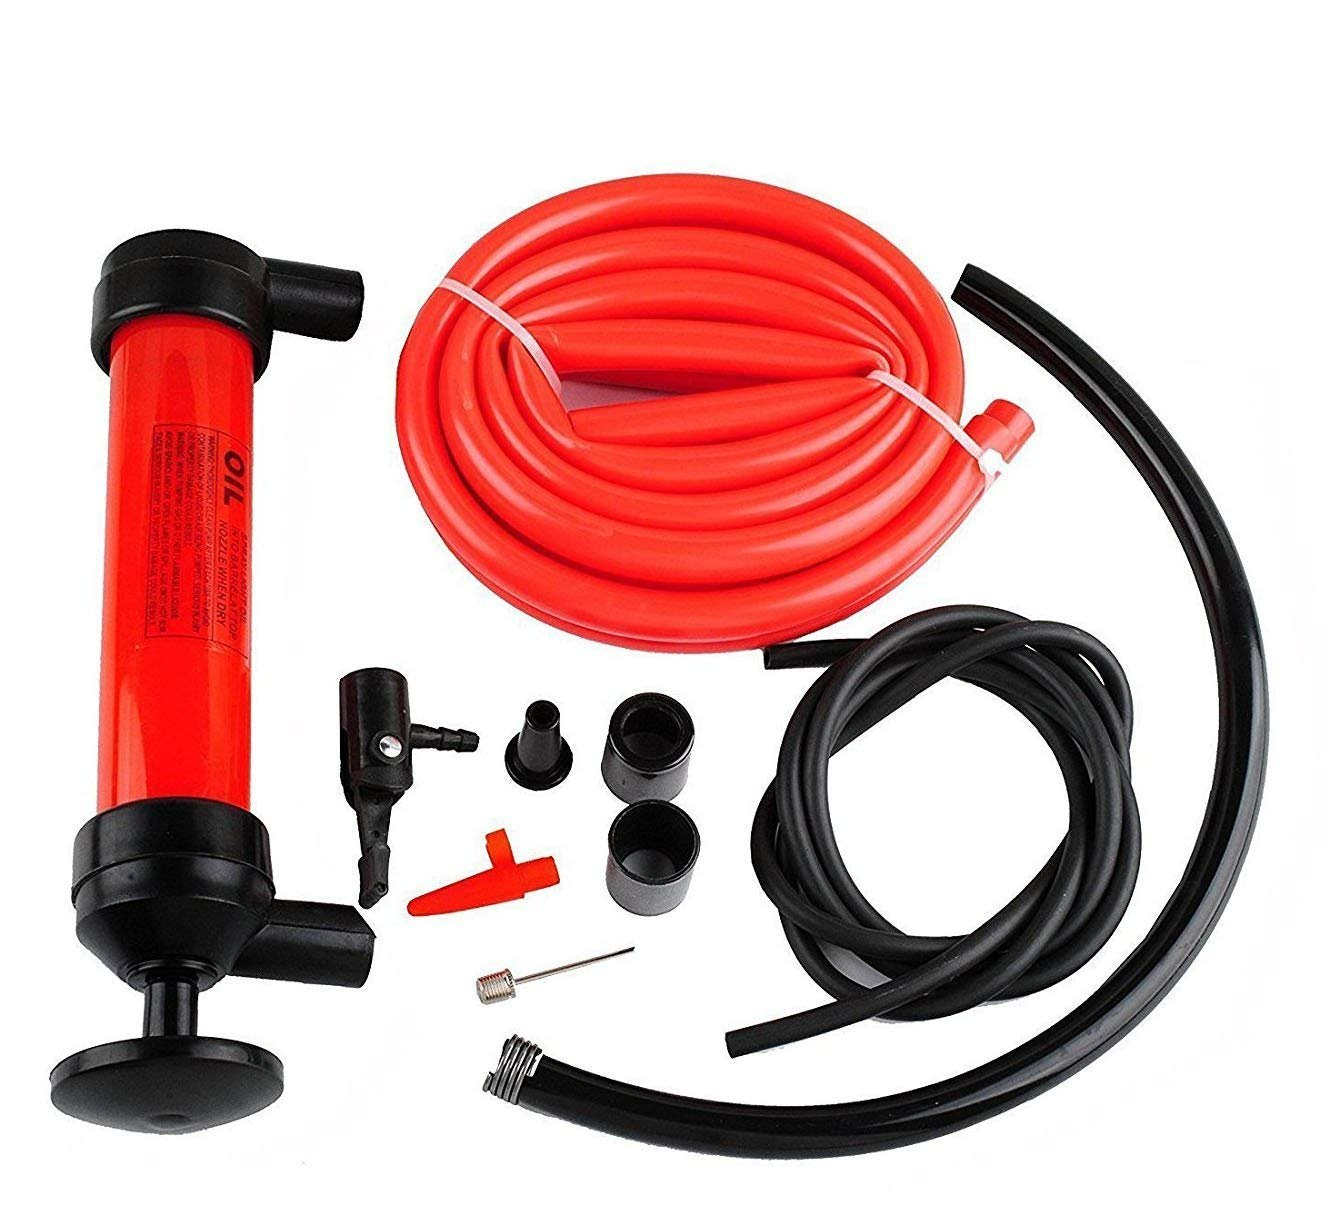 Wadoy Jiggle Syphon Self Priming Gas Siphon Pump Gasoline/Fuel/Water Shaker Siphon Safety Self Priming Hose 6ft -1/2' Valve